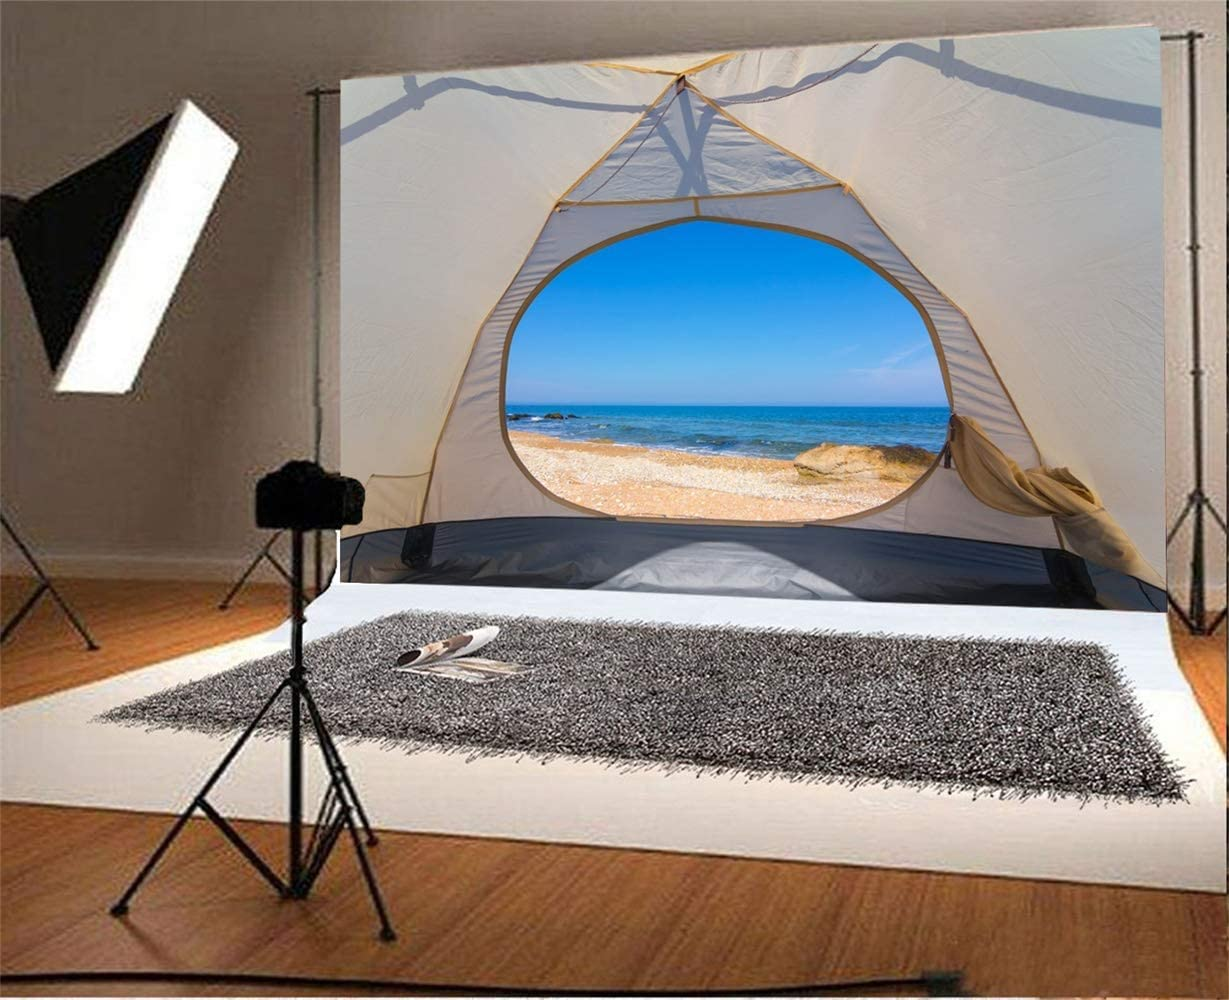 GoEoo 8x6.5ft Seaside Camping Scene Vinyl Photography Background Opened Tent Towards The Sea Scenic Backdrop Summer Holiday Scout Camp Holiday Maker Shoot Studio Props